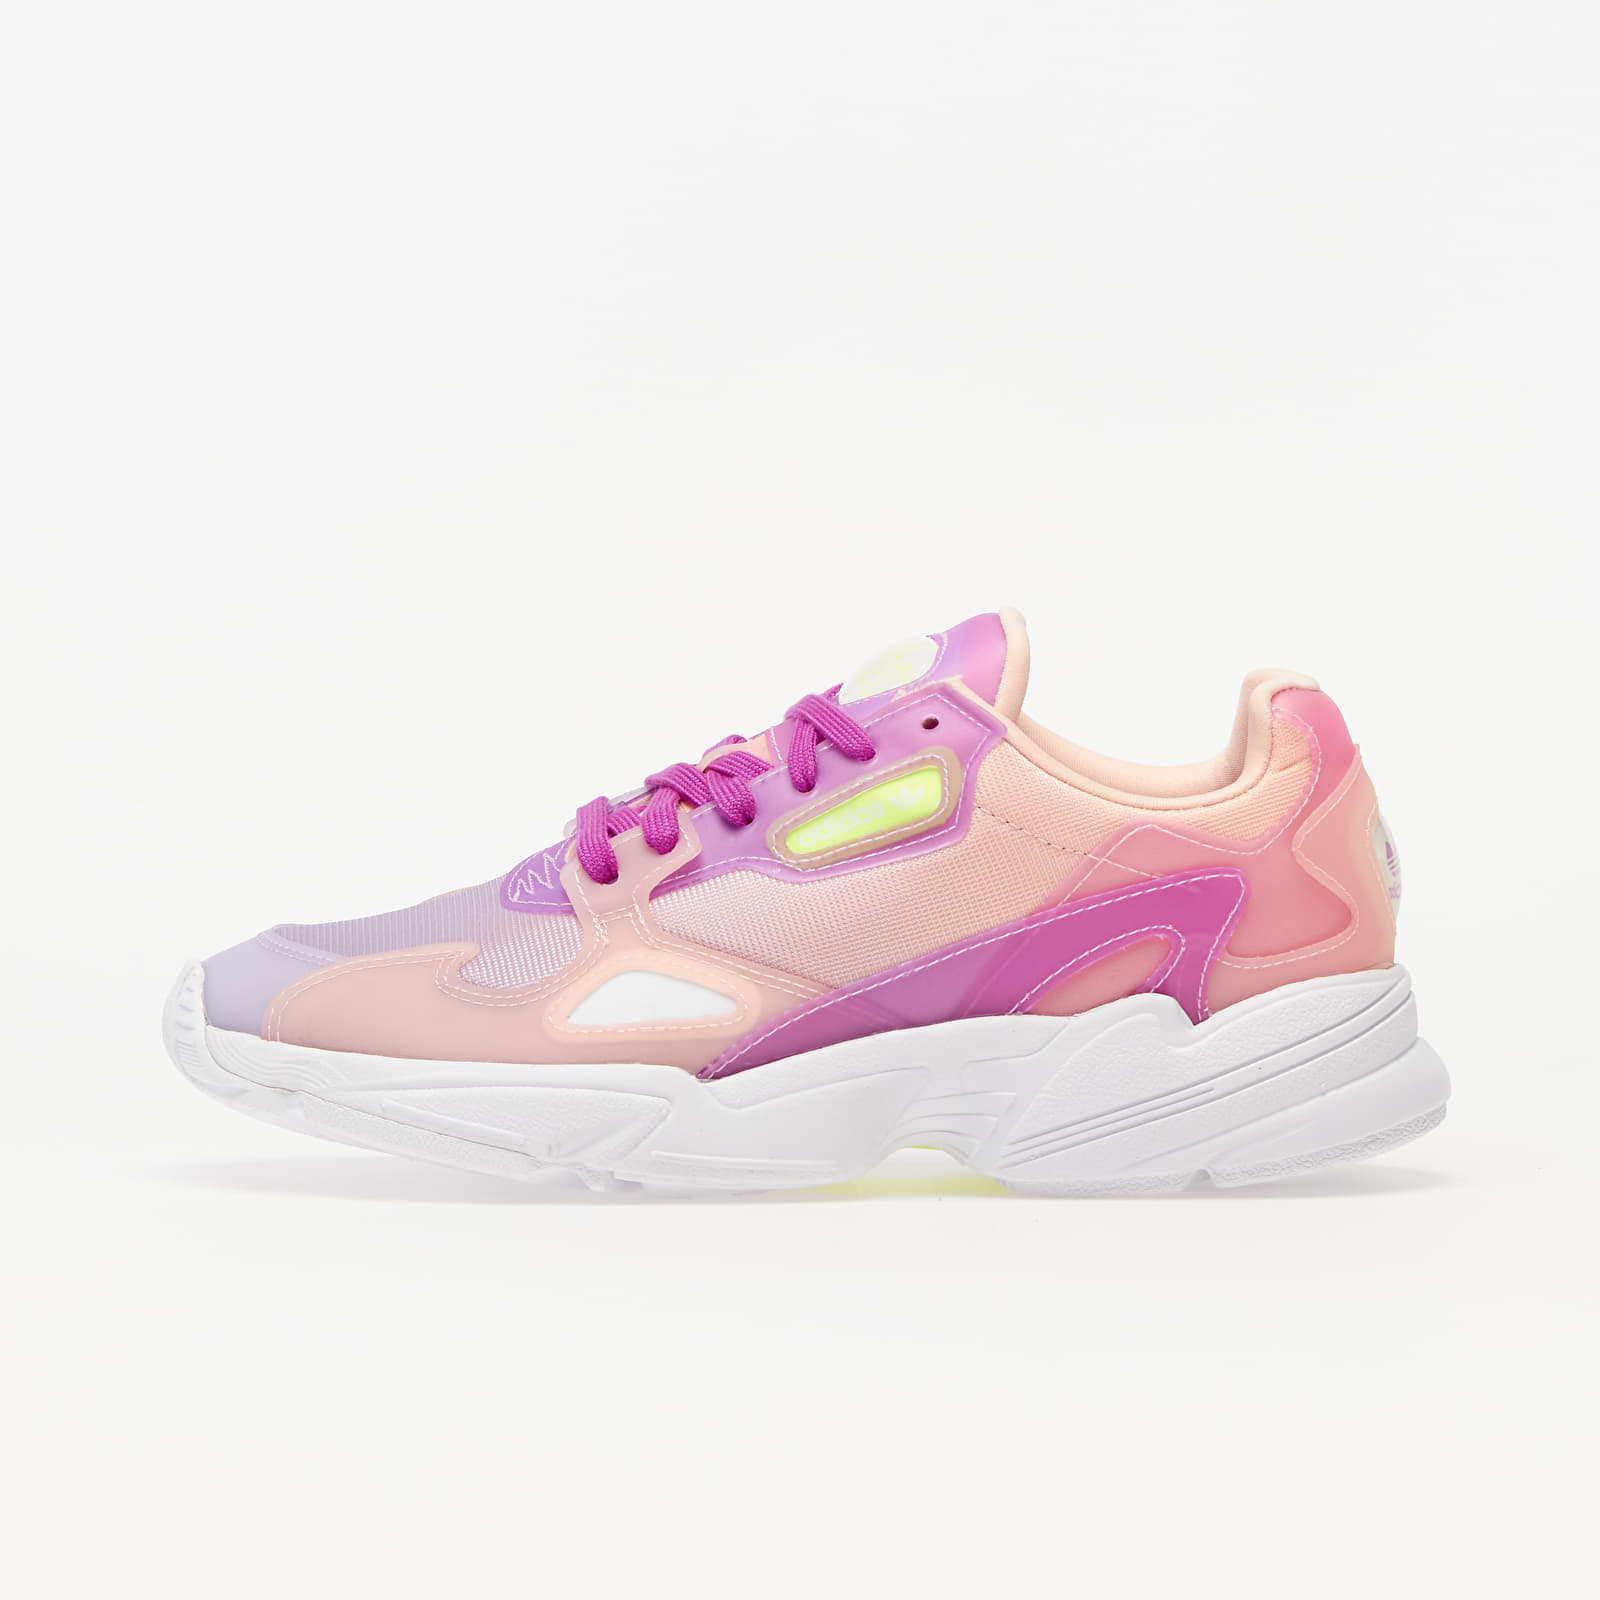 adidas Falcon W Blizard Purple/ Shock Purple/ Haze Coral EUR 37 1/3